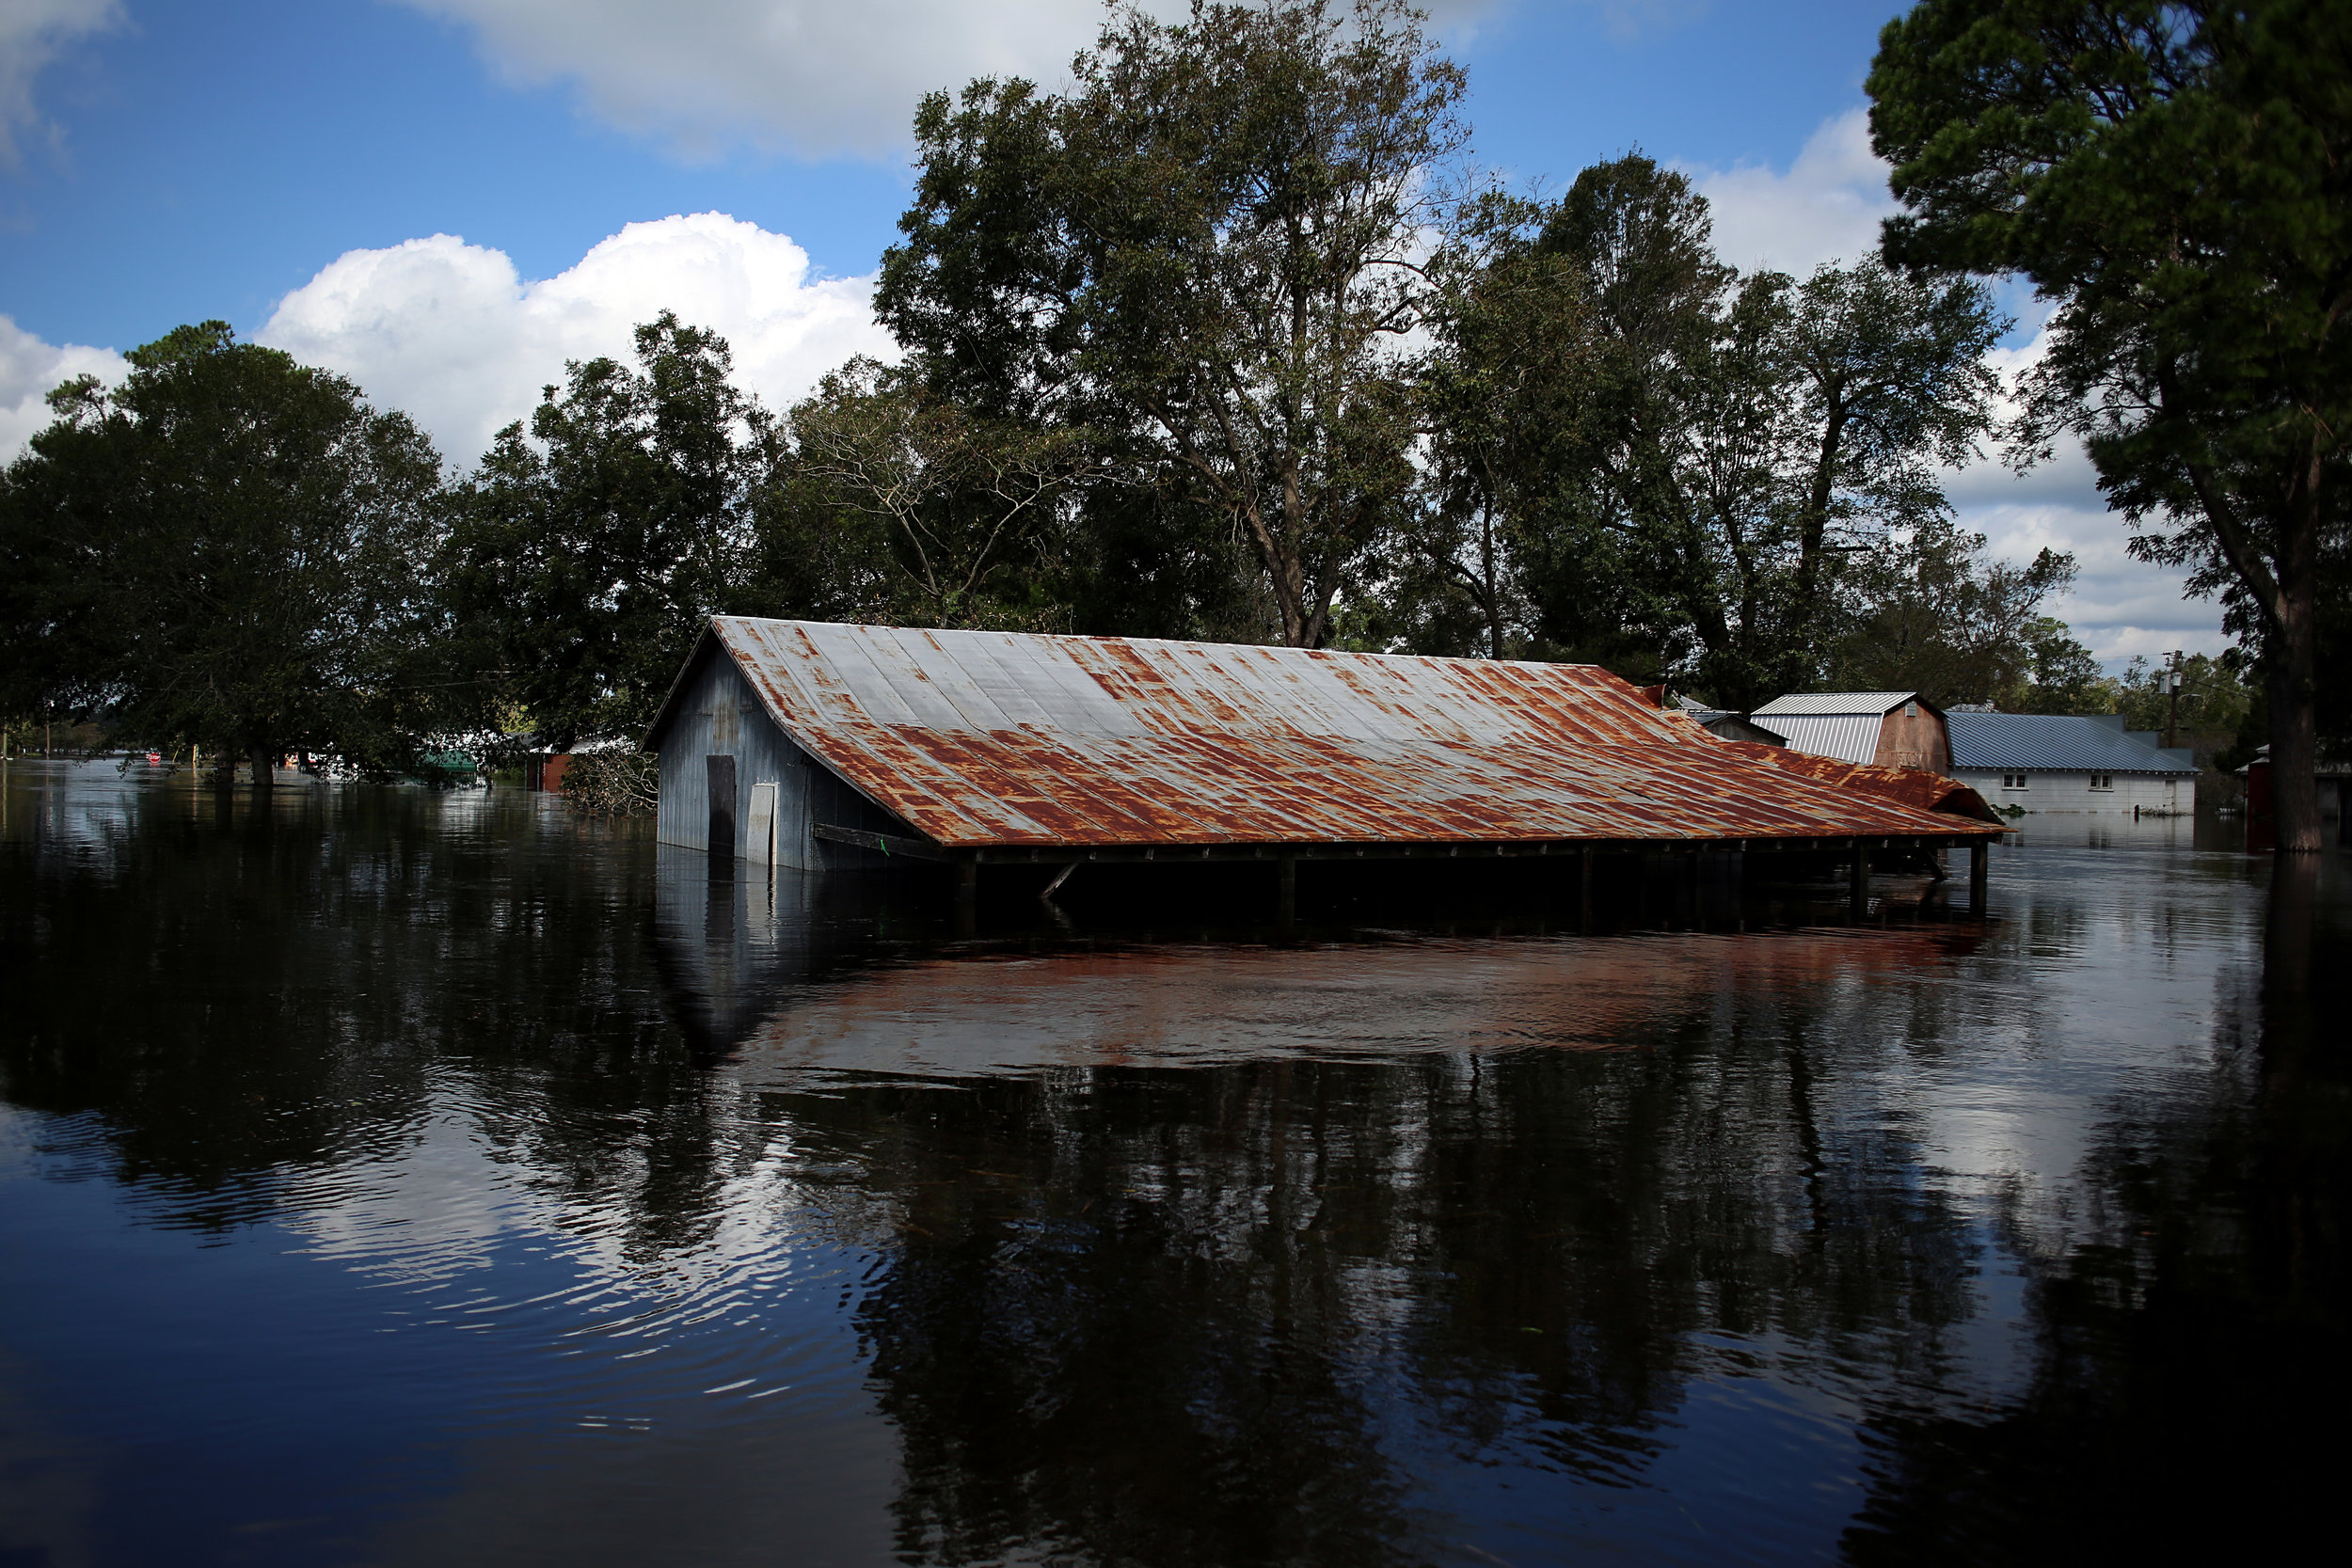 A structure flooded by the nearby Trent River is seen Sept. 18, 2018, in Pollocksville, N.C.